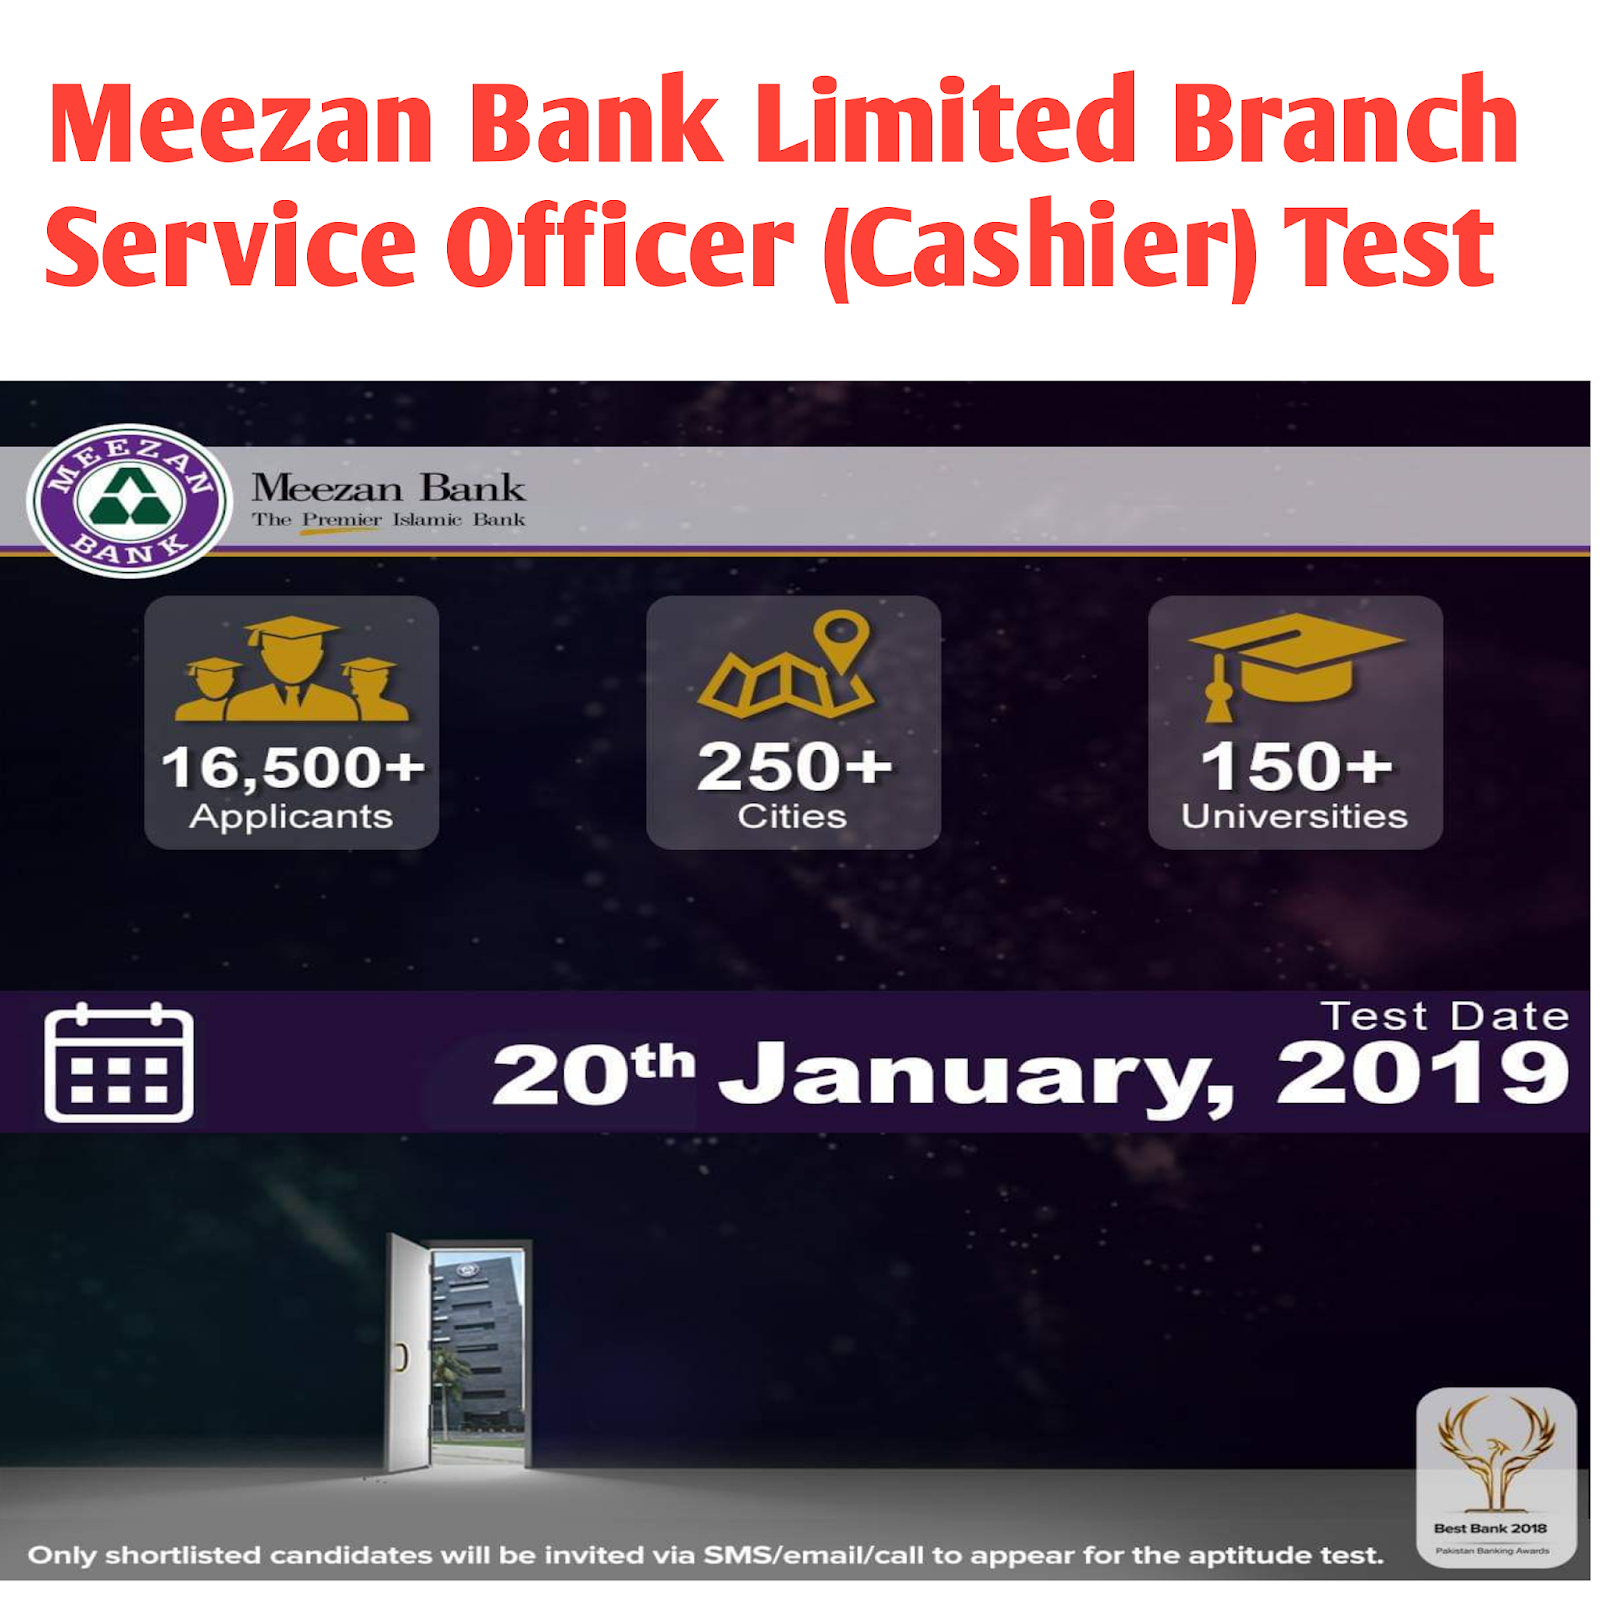 General Knowledge: Meezan Bank Limited Branch Service Officer